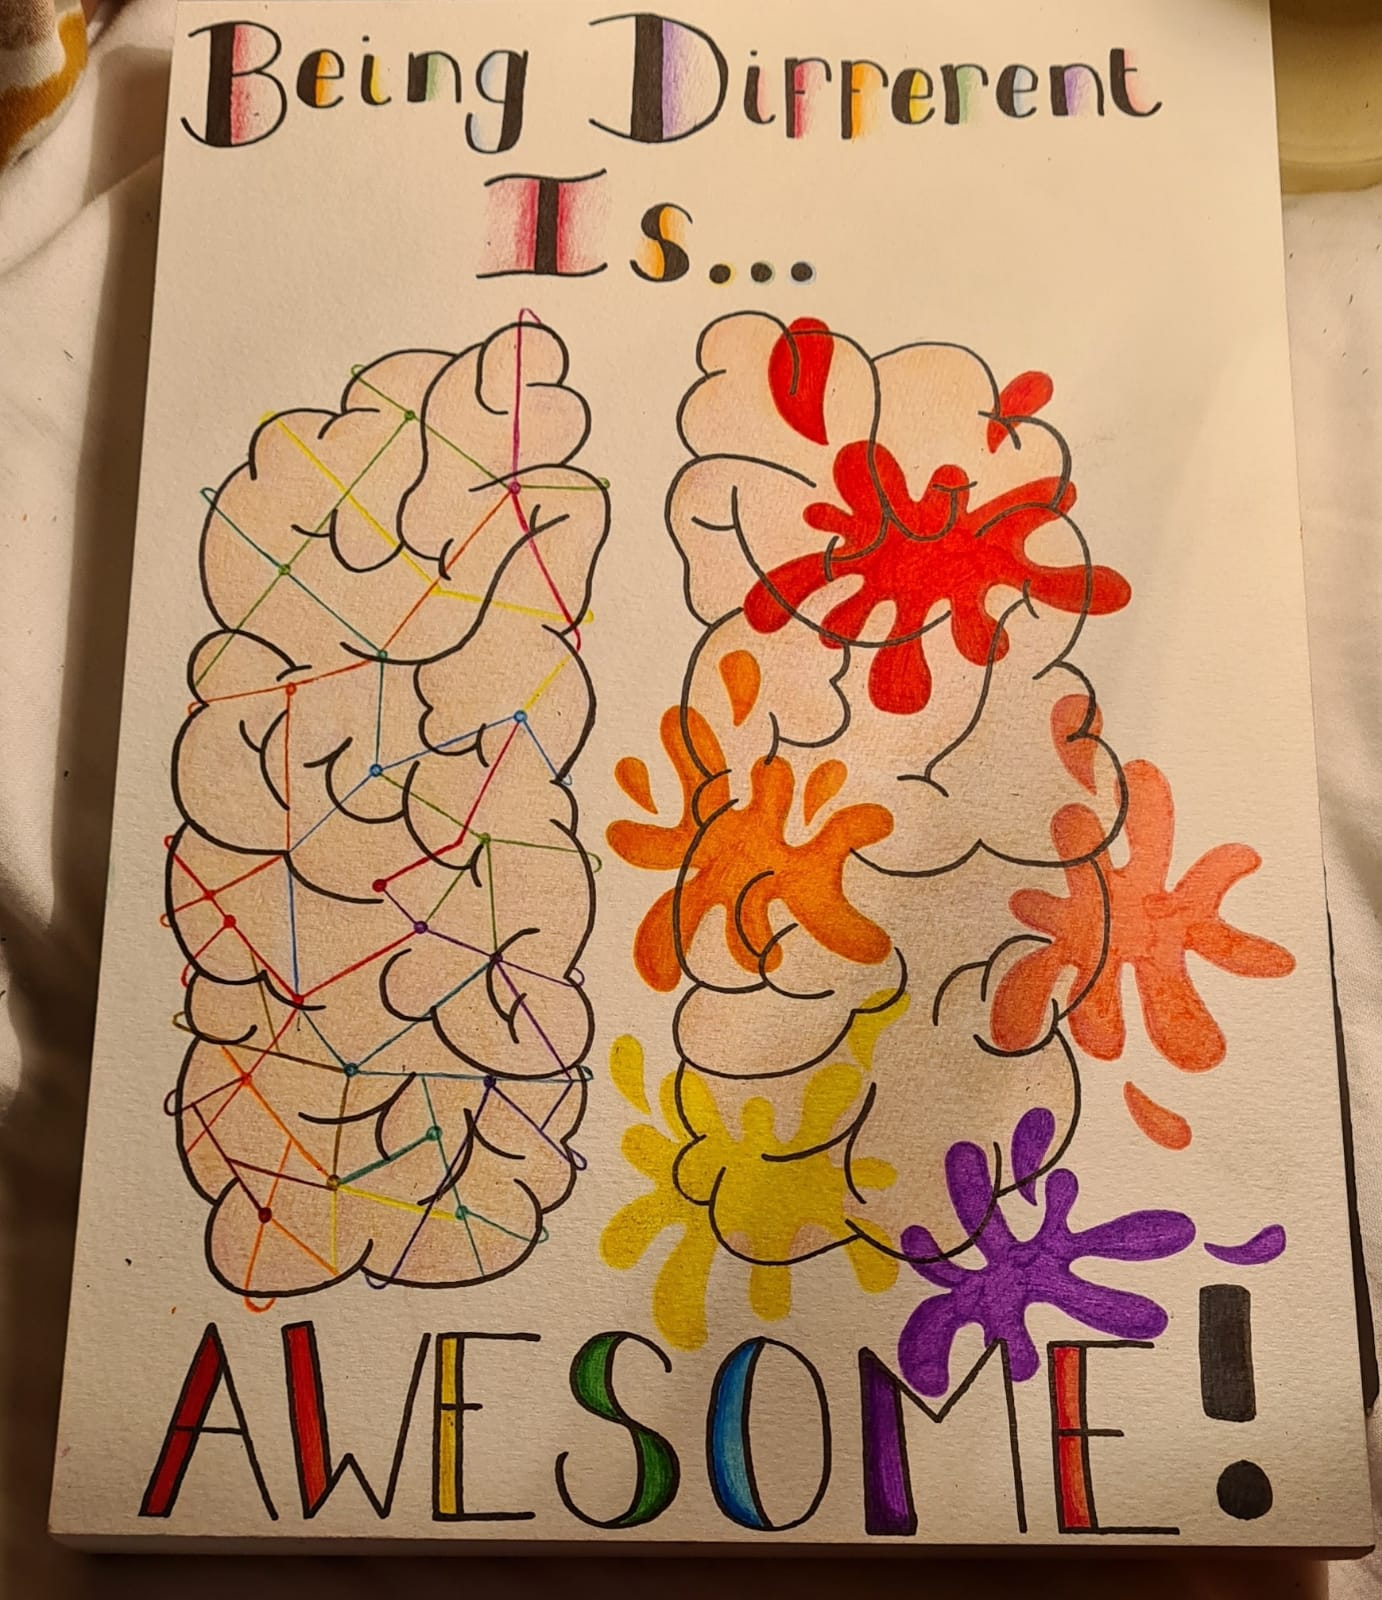 """This is a picture of a flesh coloured cartoon brain which has a black outline that has been split into two pieces. On the left side of the brain there are multi coloured lines that have been drawn all over it, on the right side of the brain their are red, orange, pink, yellow and purple splat marks. At the top of the picture their are the words """"being different is"""", these words are black with the rainbow colours outlining each letter. At the bottom of the picture their is the word """"awesome"""" which has been coloured in each colour of the rainbow and also has a black outline."""